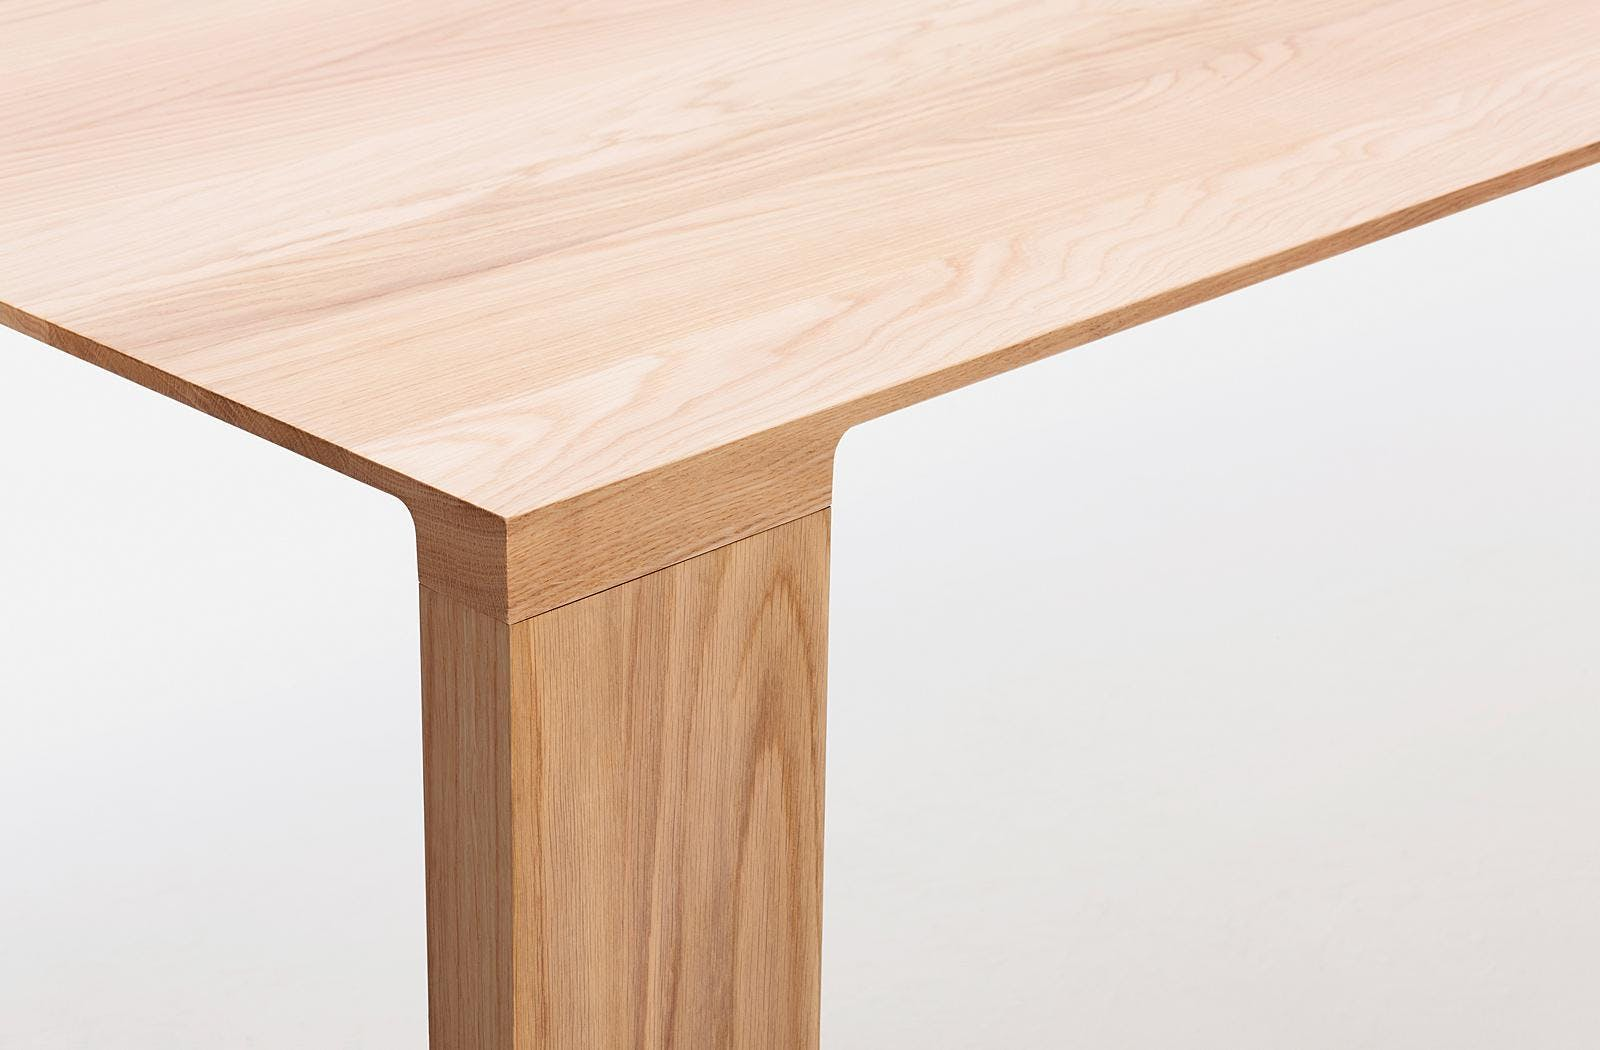 Bensen Radii Table Joint Detail